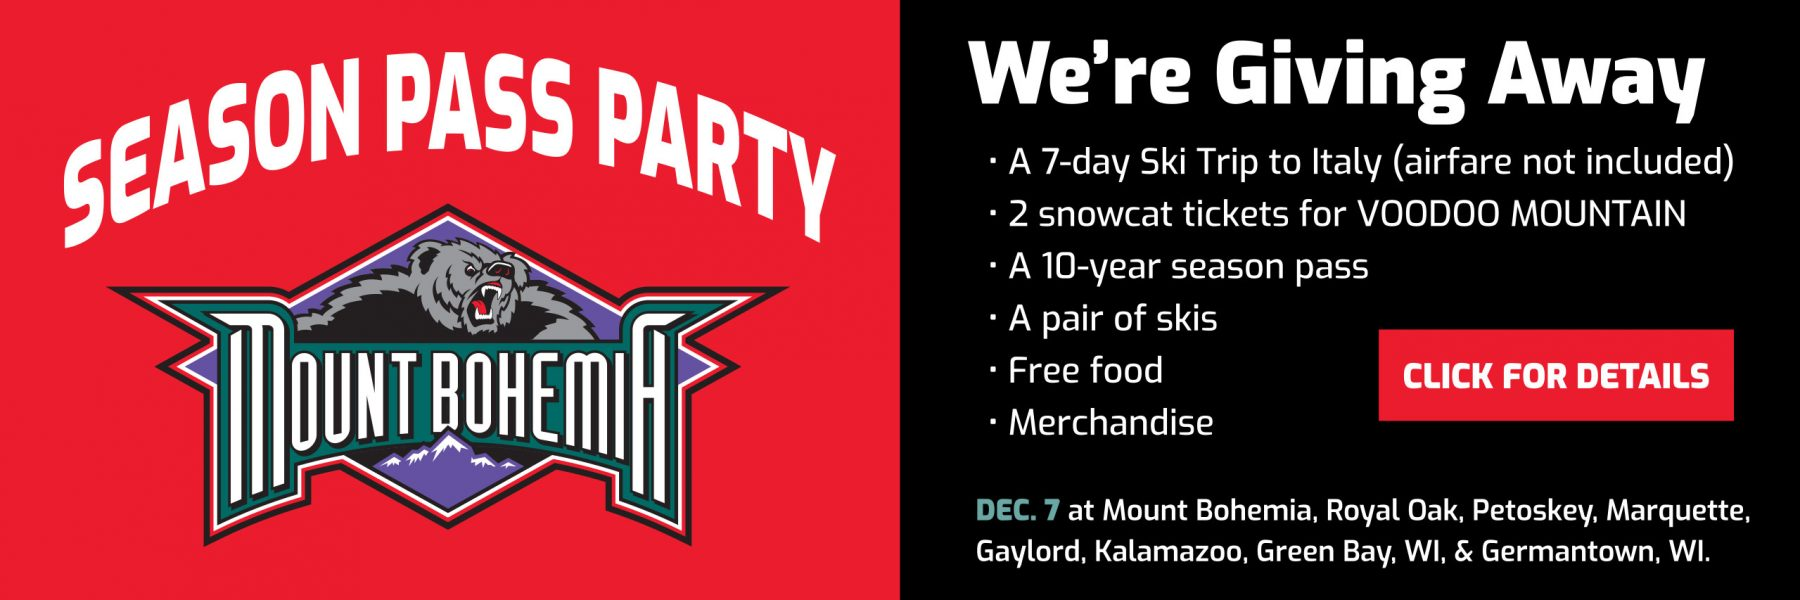 season pass party december 7